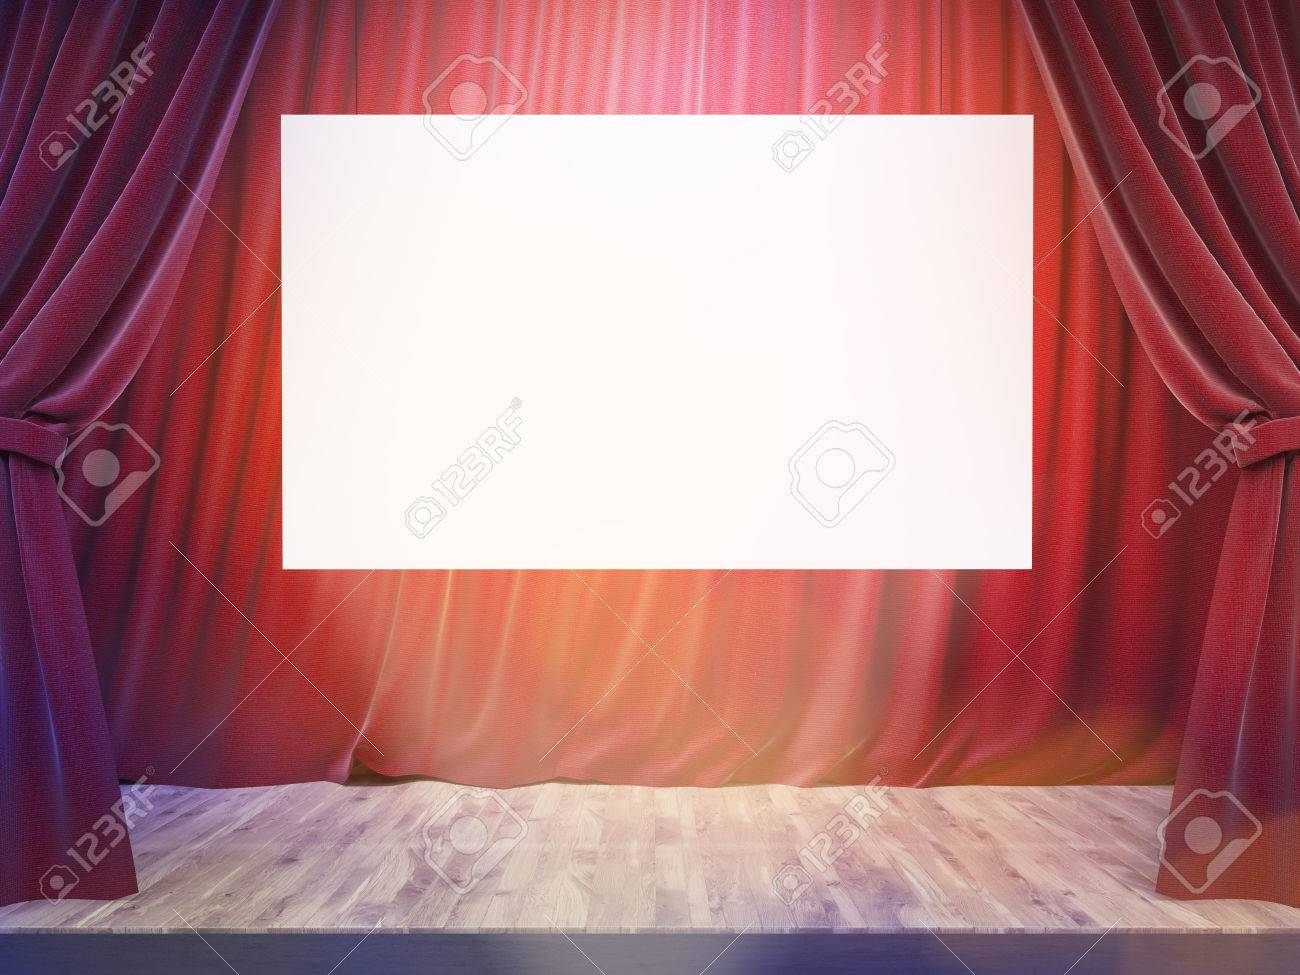 Theater Stage With Drawn Red Curtains, Blank White Banner And Limelight.  Mock Up,